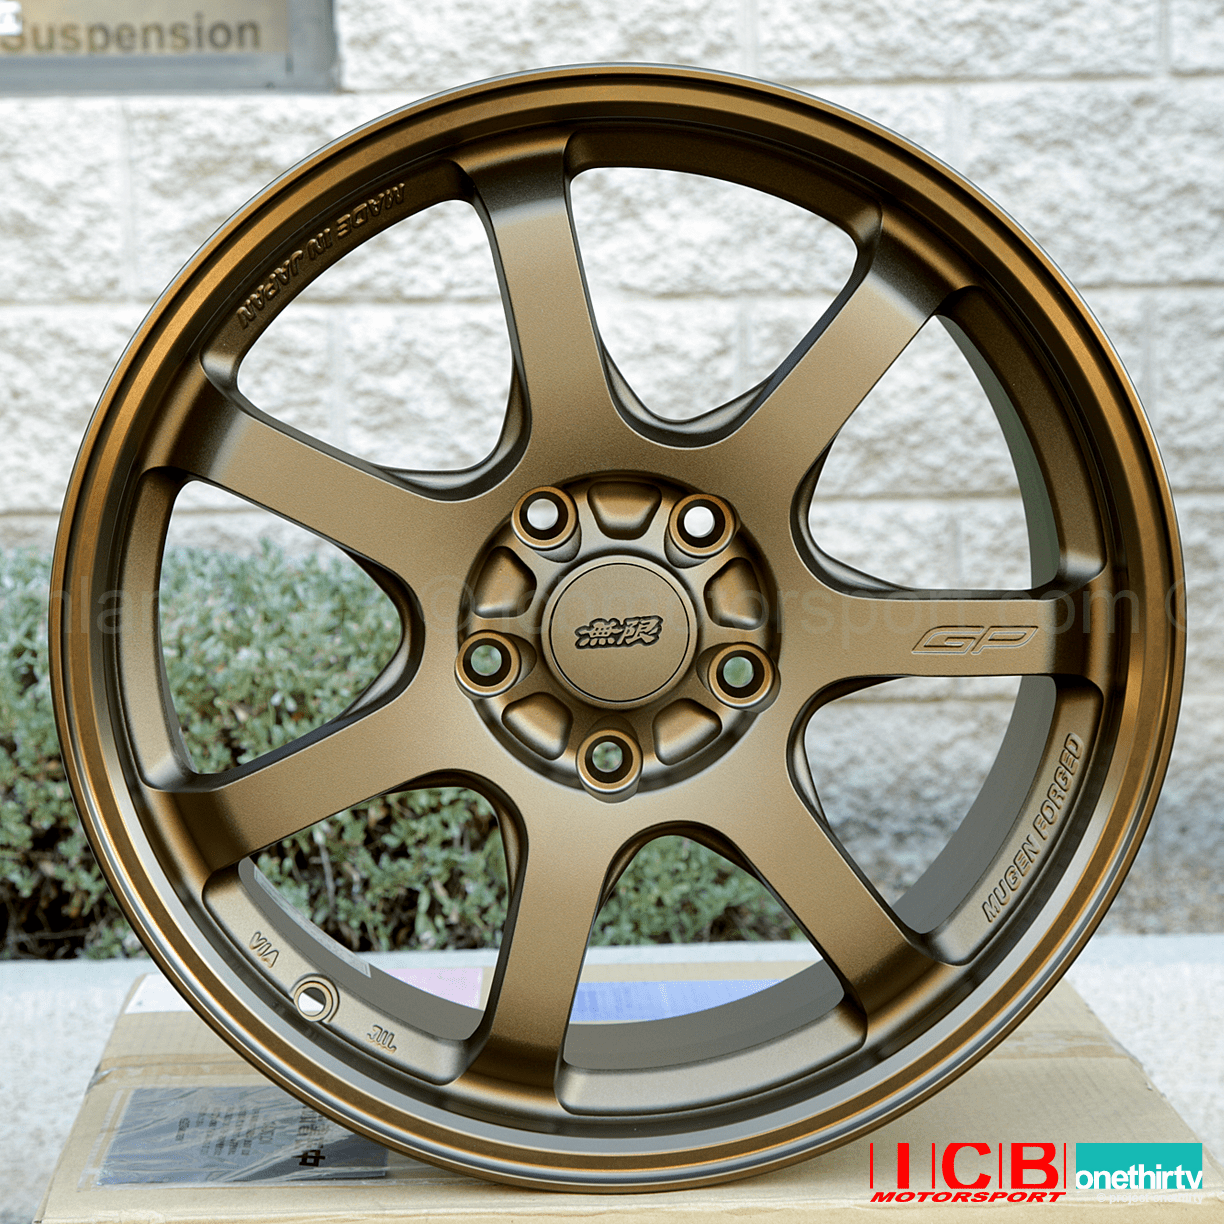 Mugen Forged Aluminum Wheels GP 17X7 +48 Offset CRZ/Civic EK EM1/Ferio EP3 Integra DC2/DB8/DC5 CL7 CL9